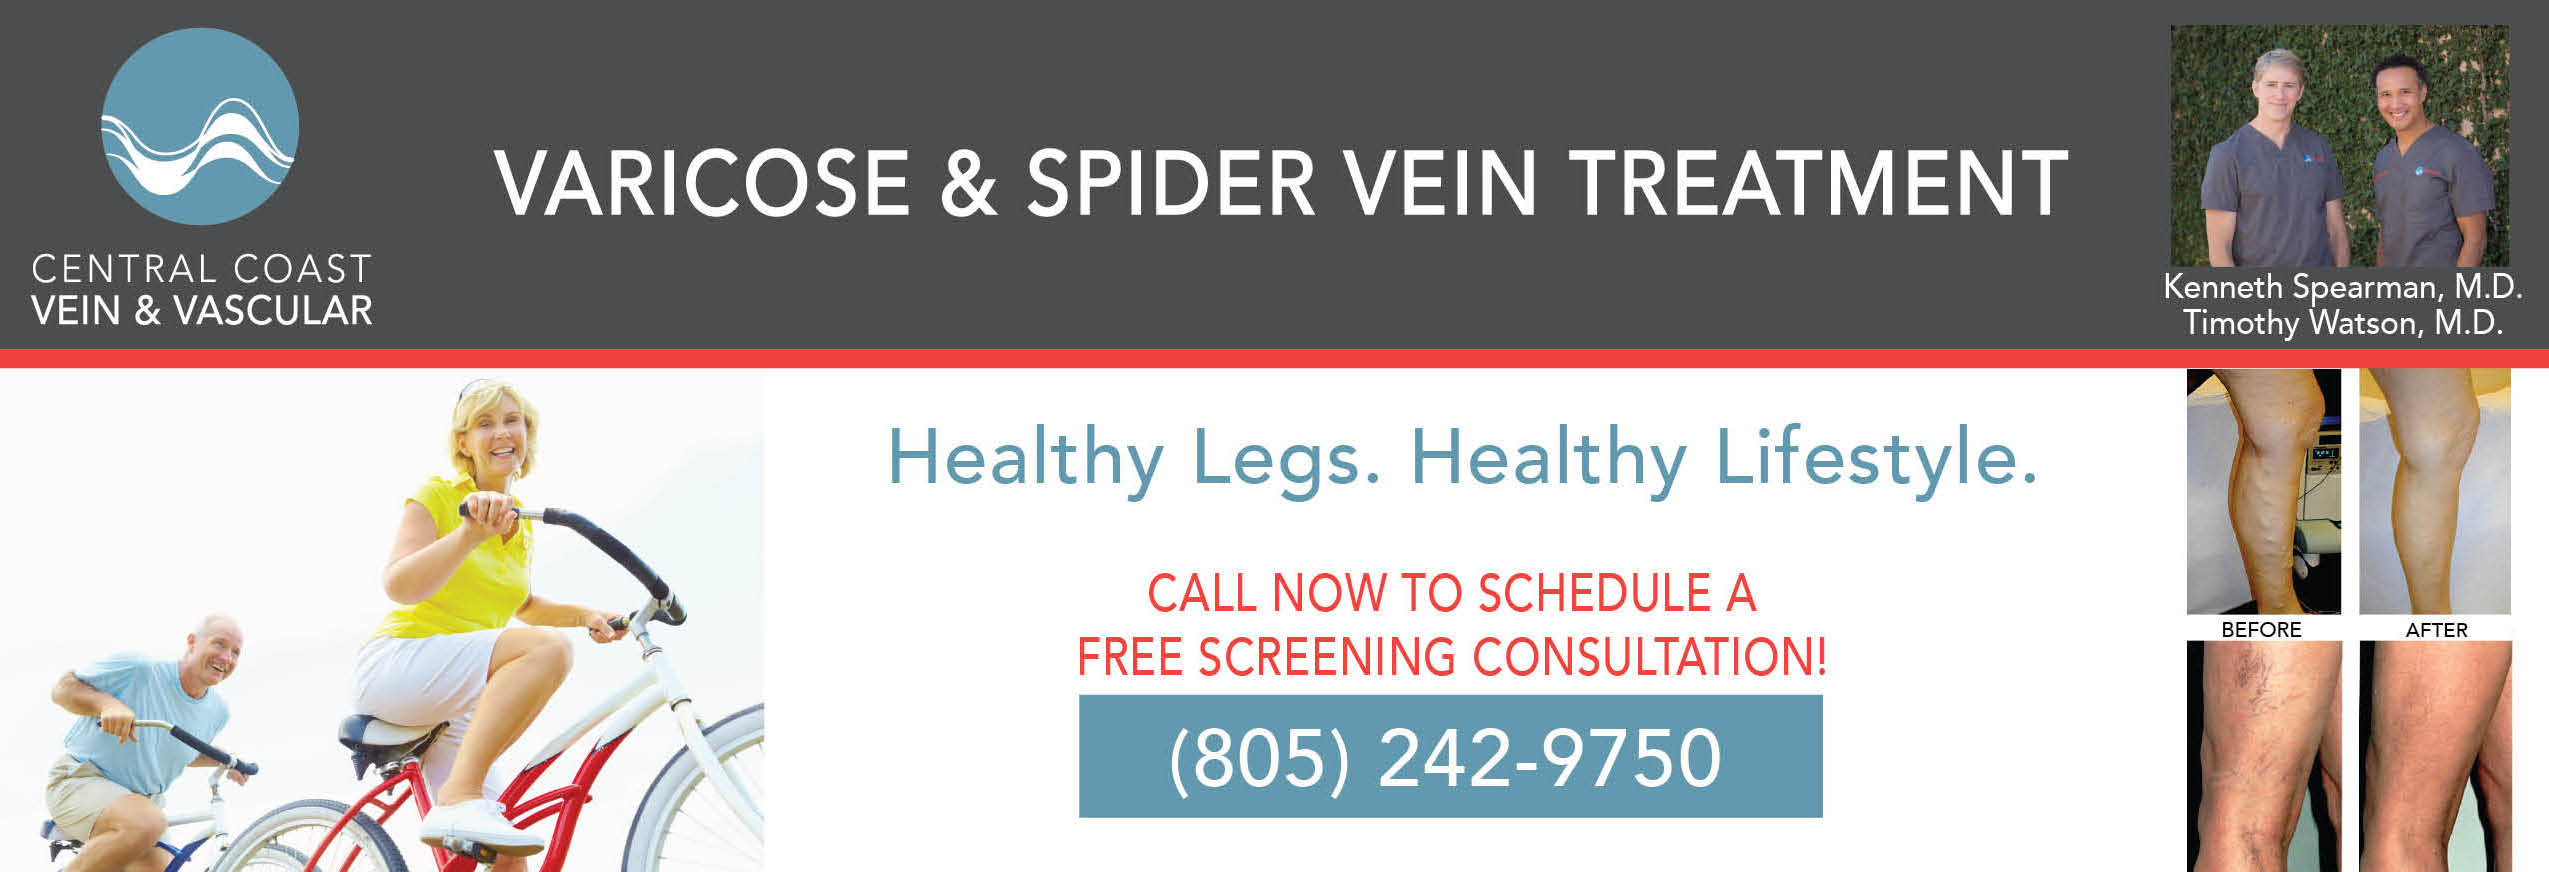 Central Coast Vein & Vascular in Arroyo Grande, CA banner ad with before and after pictures